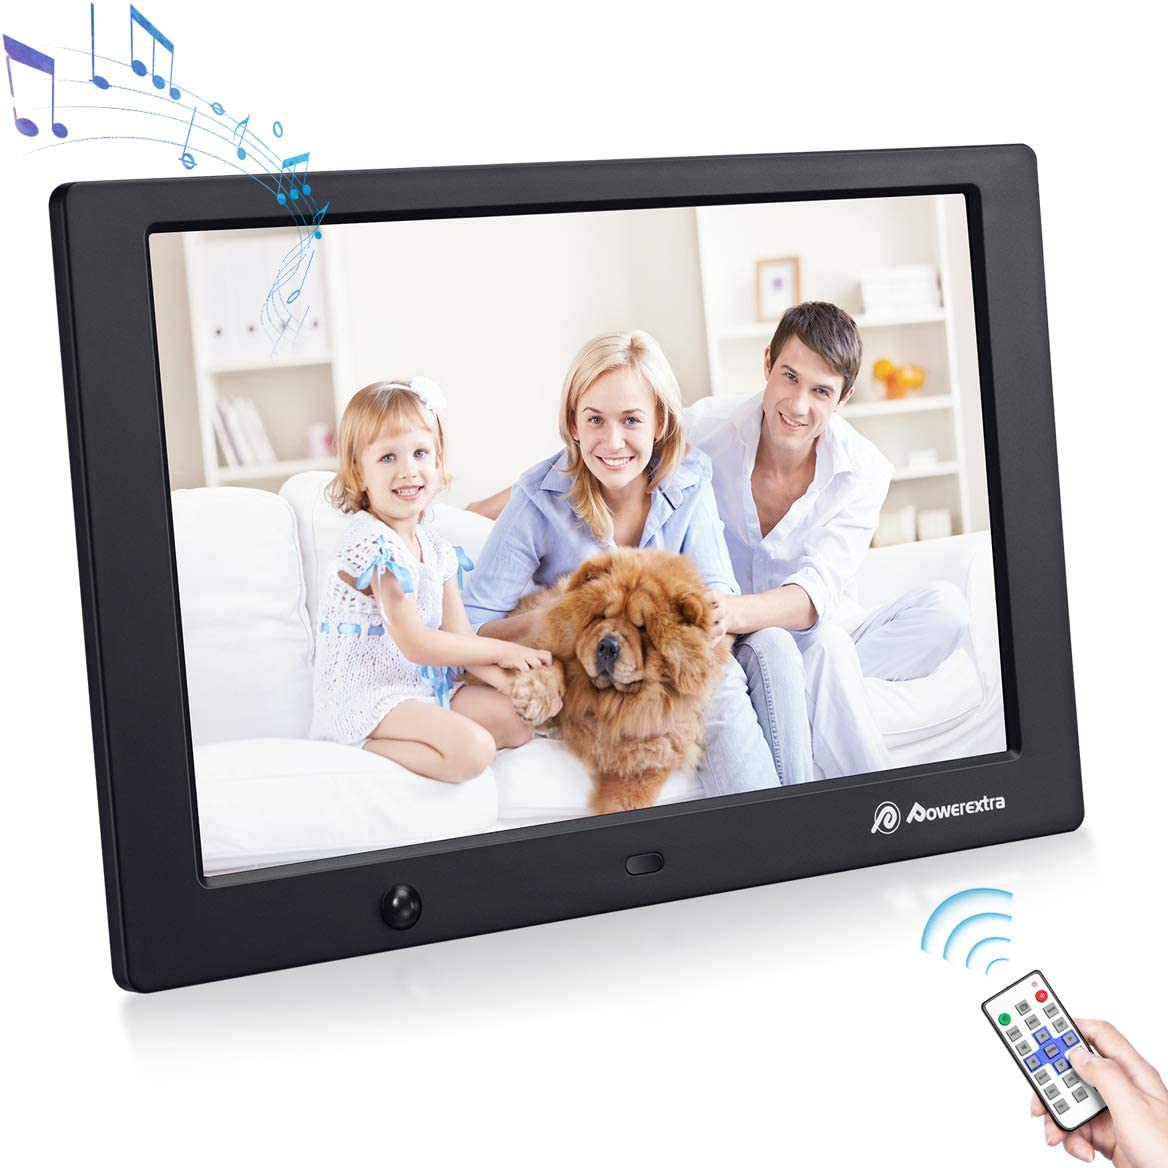 Powerextra 10.1 inch Digital Photo Frame 1280×800 Digital Picture Frame 16 9 IPS Screen Display HD Video Frame Support Motion Sensor and Photos Auto Rotate